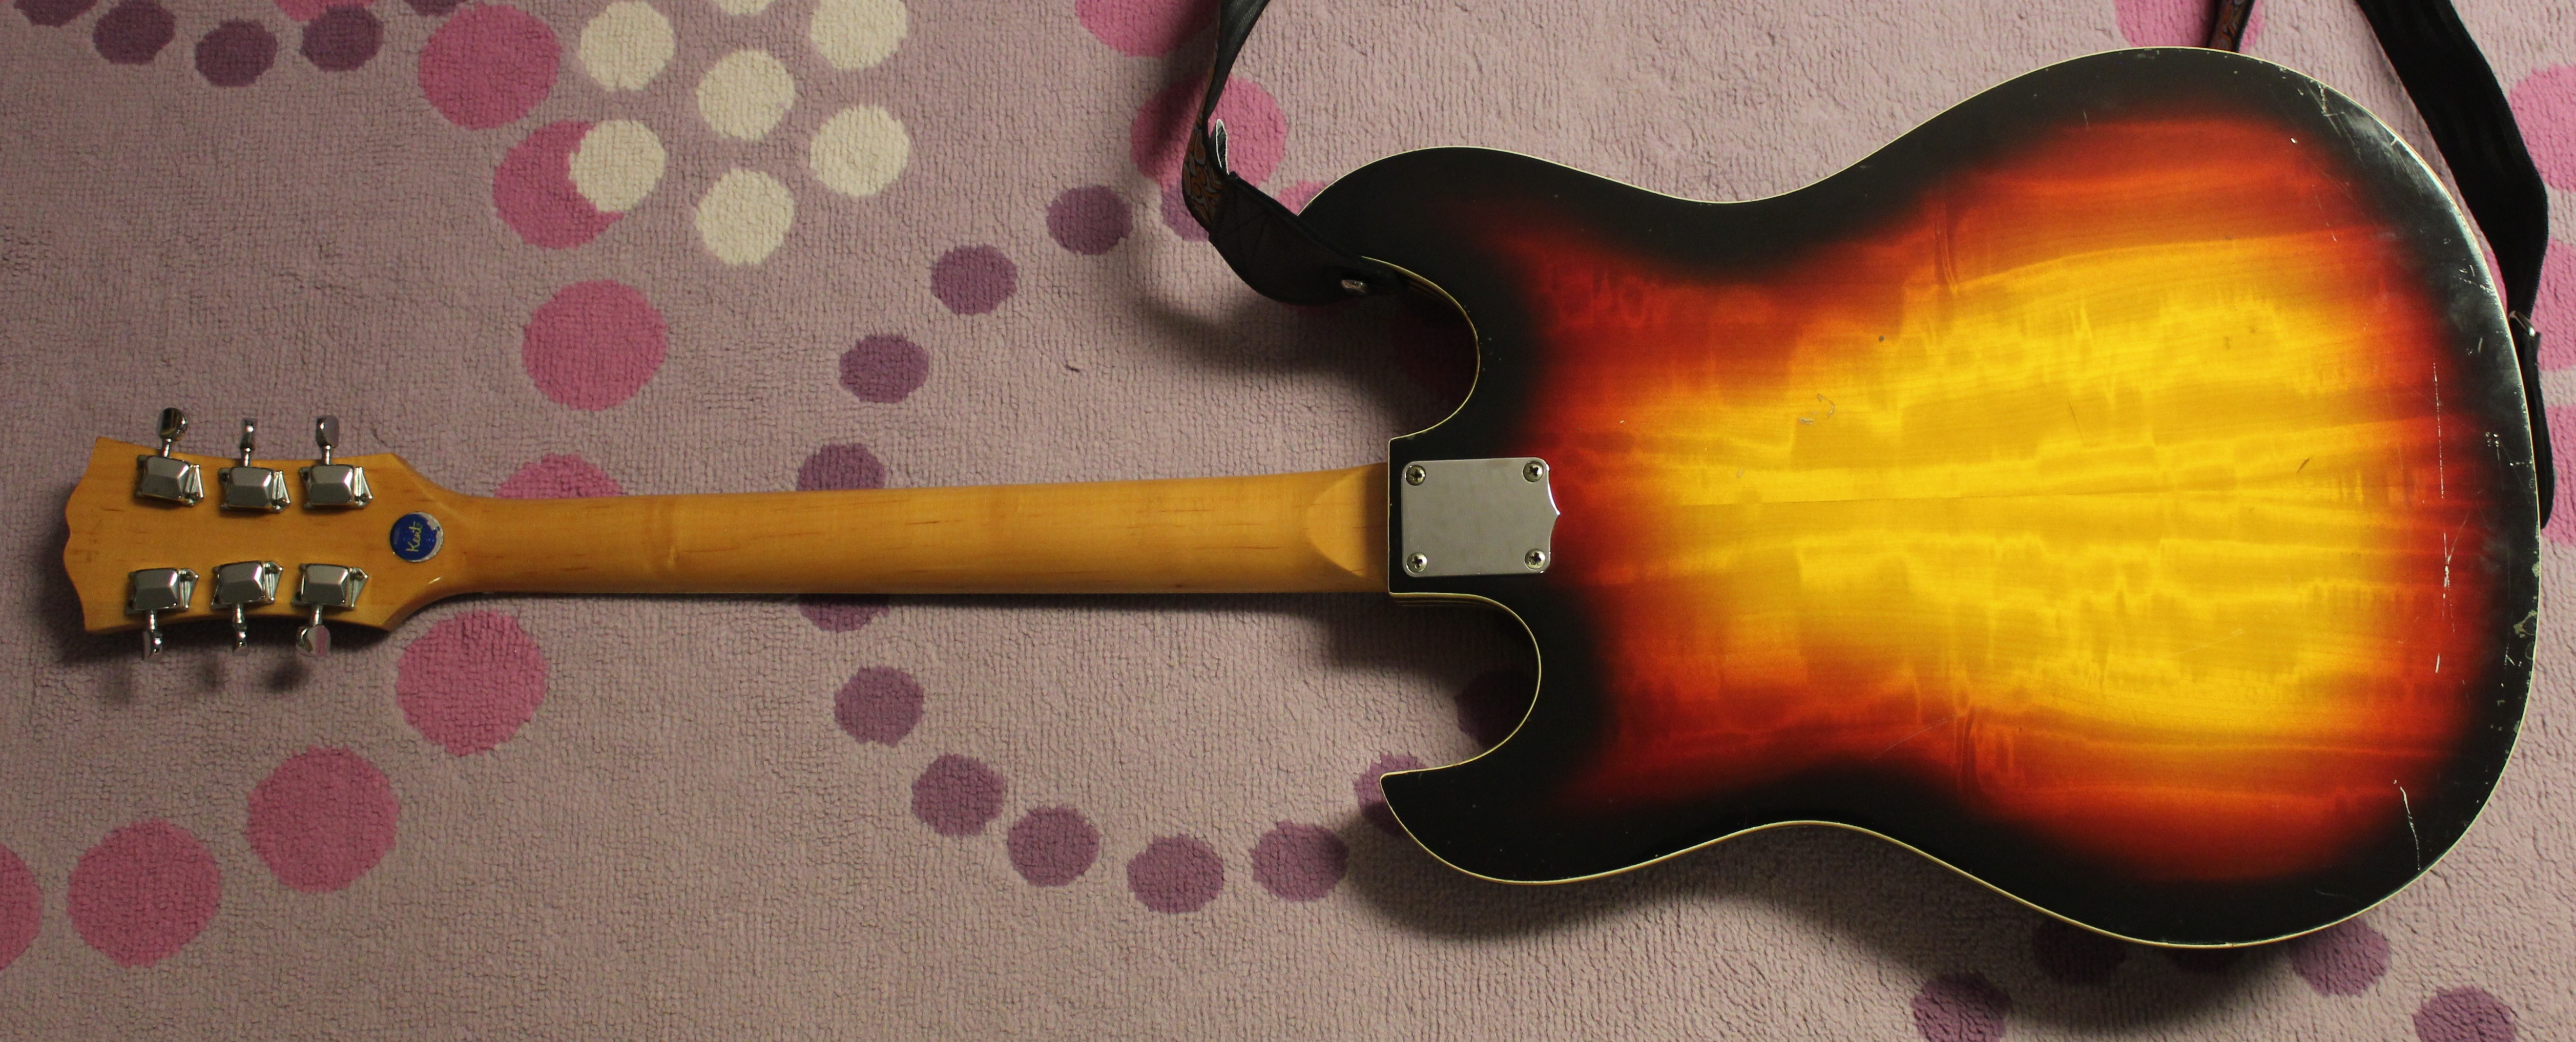 1967 69 kent 740 solidbody electric guitar japan made drowning in guitars. Black Bedroom Furniture Sets. Home Design Ideas